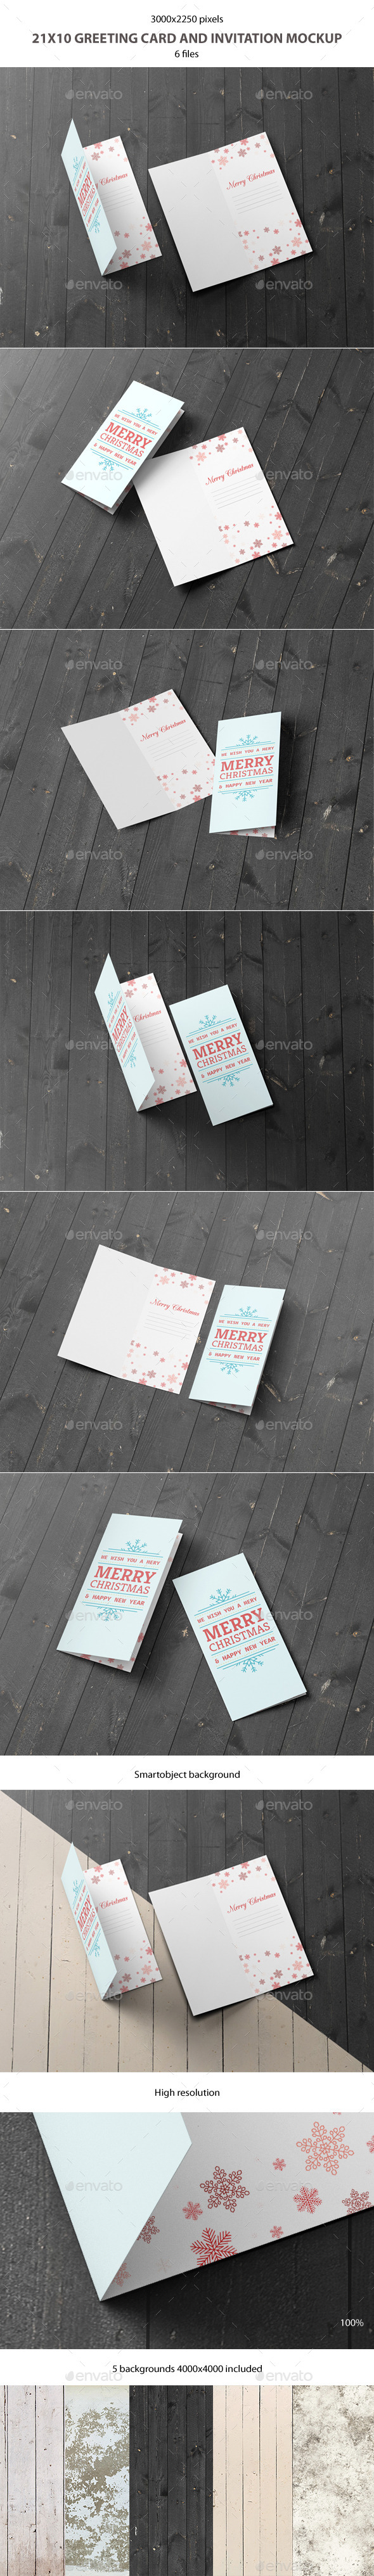 GraphicRiver 21x10 Greeting Card and Invitation Mockup 9296208